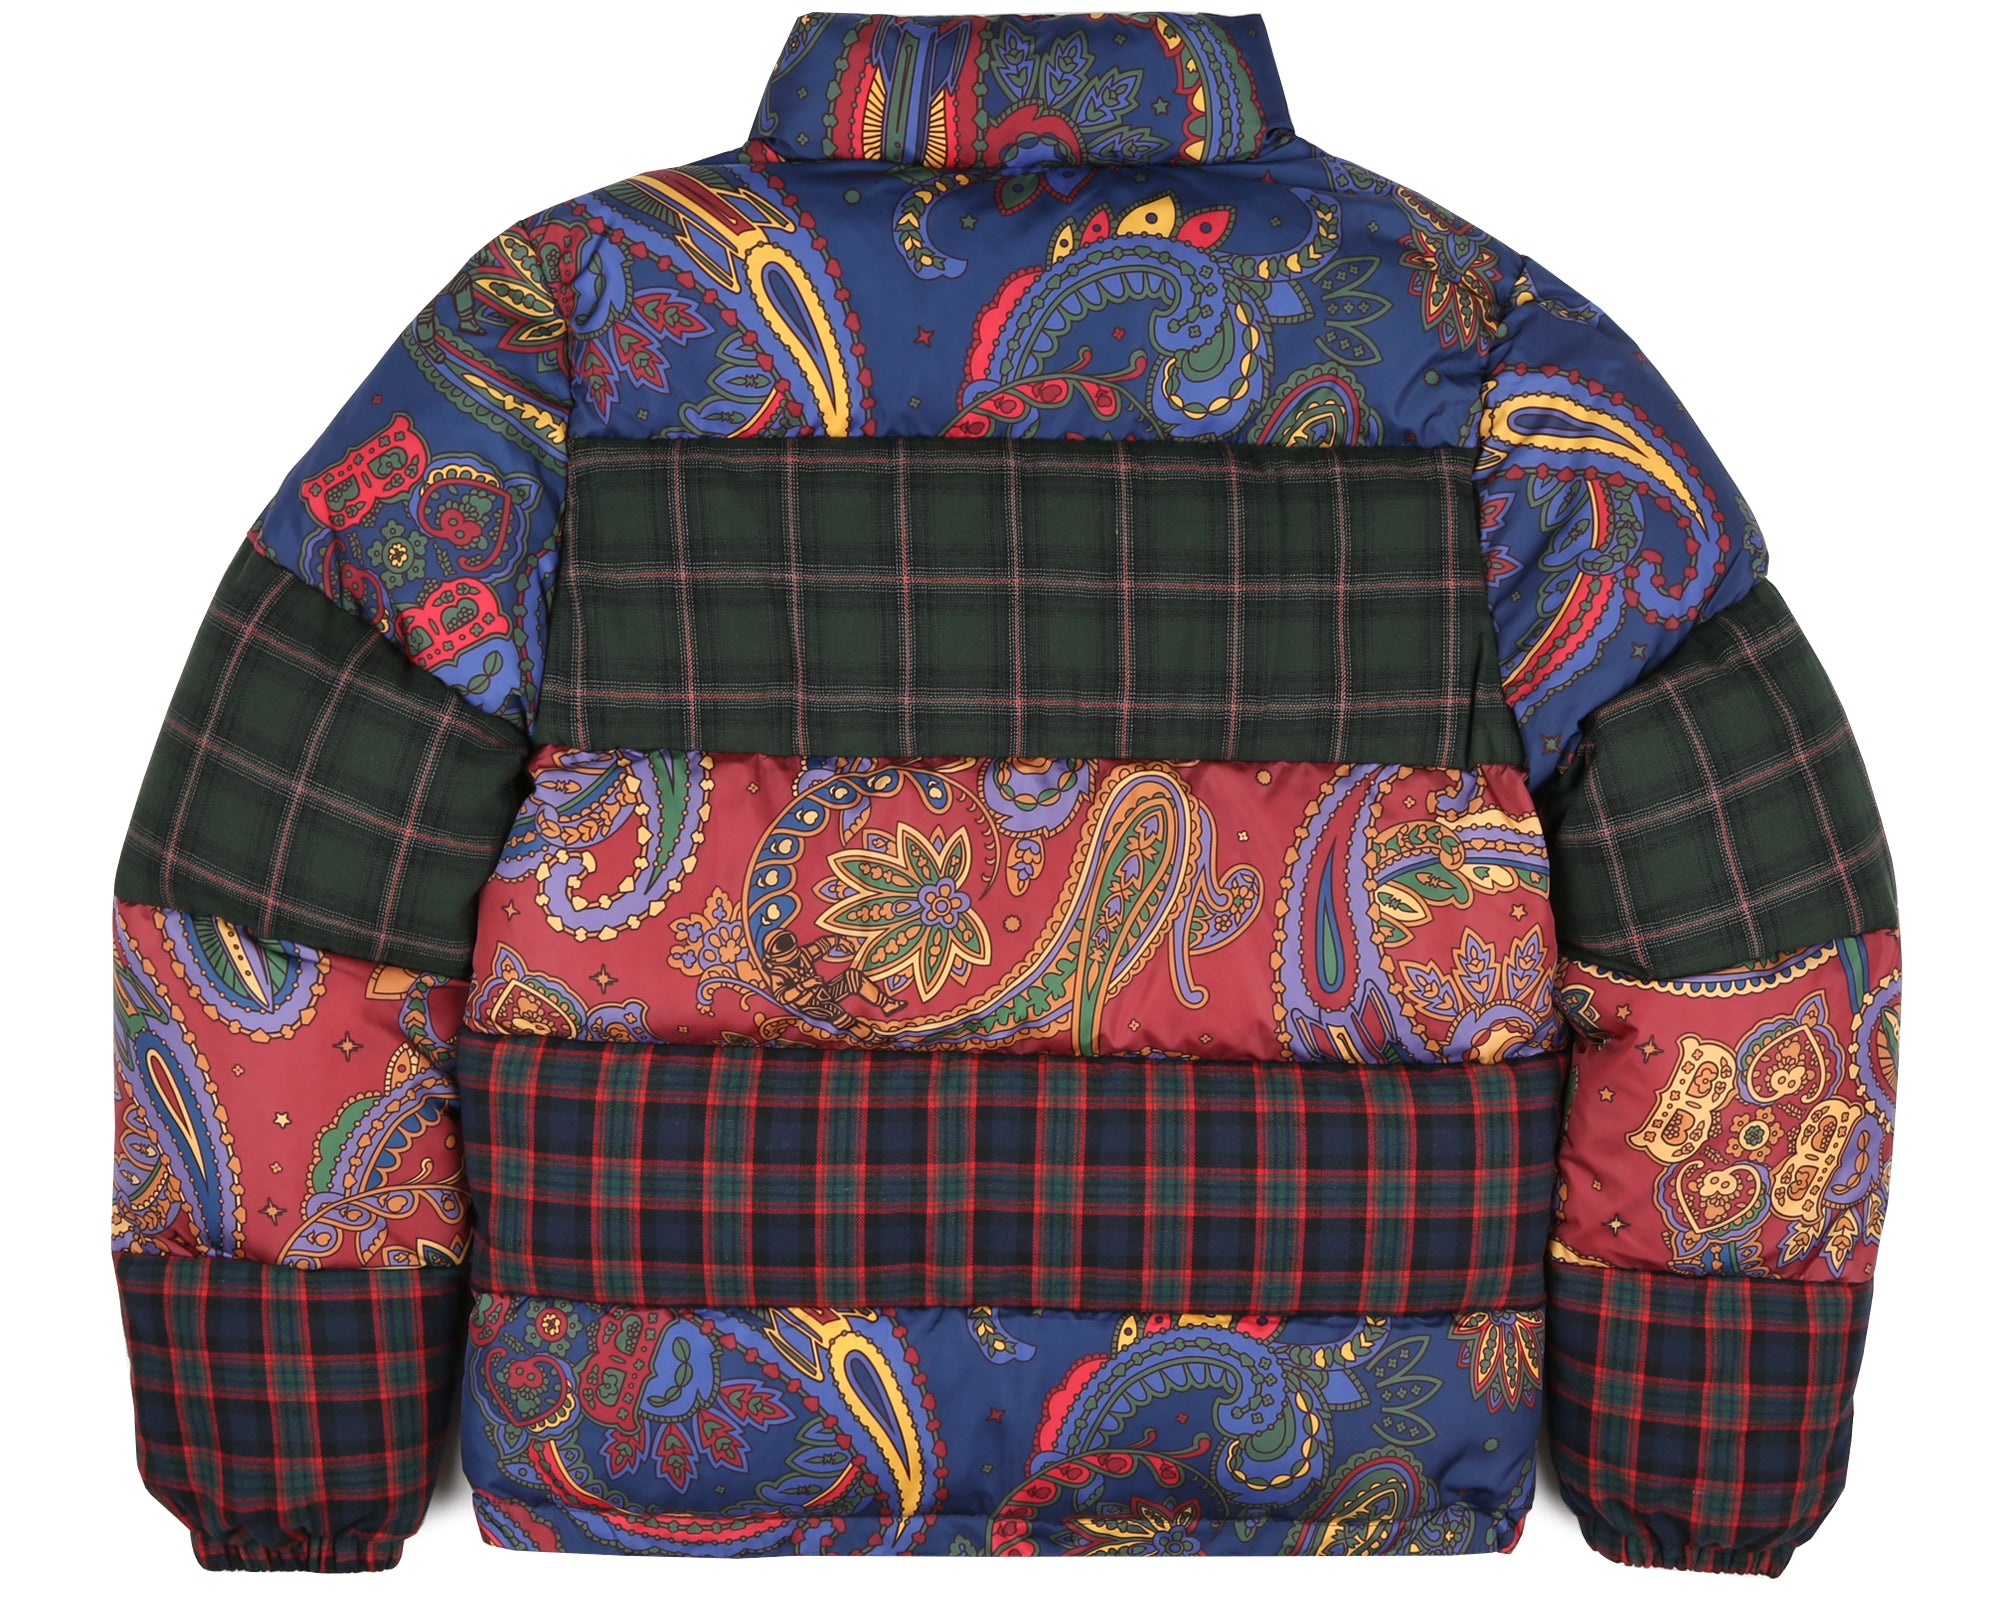 PAISLEY CHECK DOWN JACKET - PAISLEY/CHECK